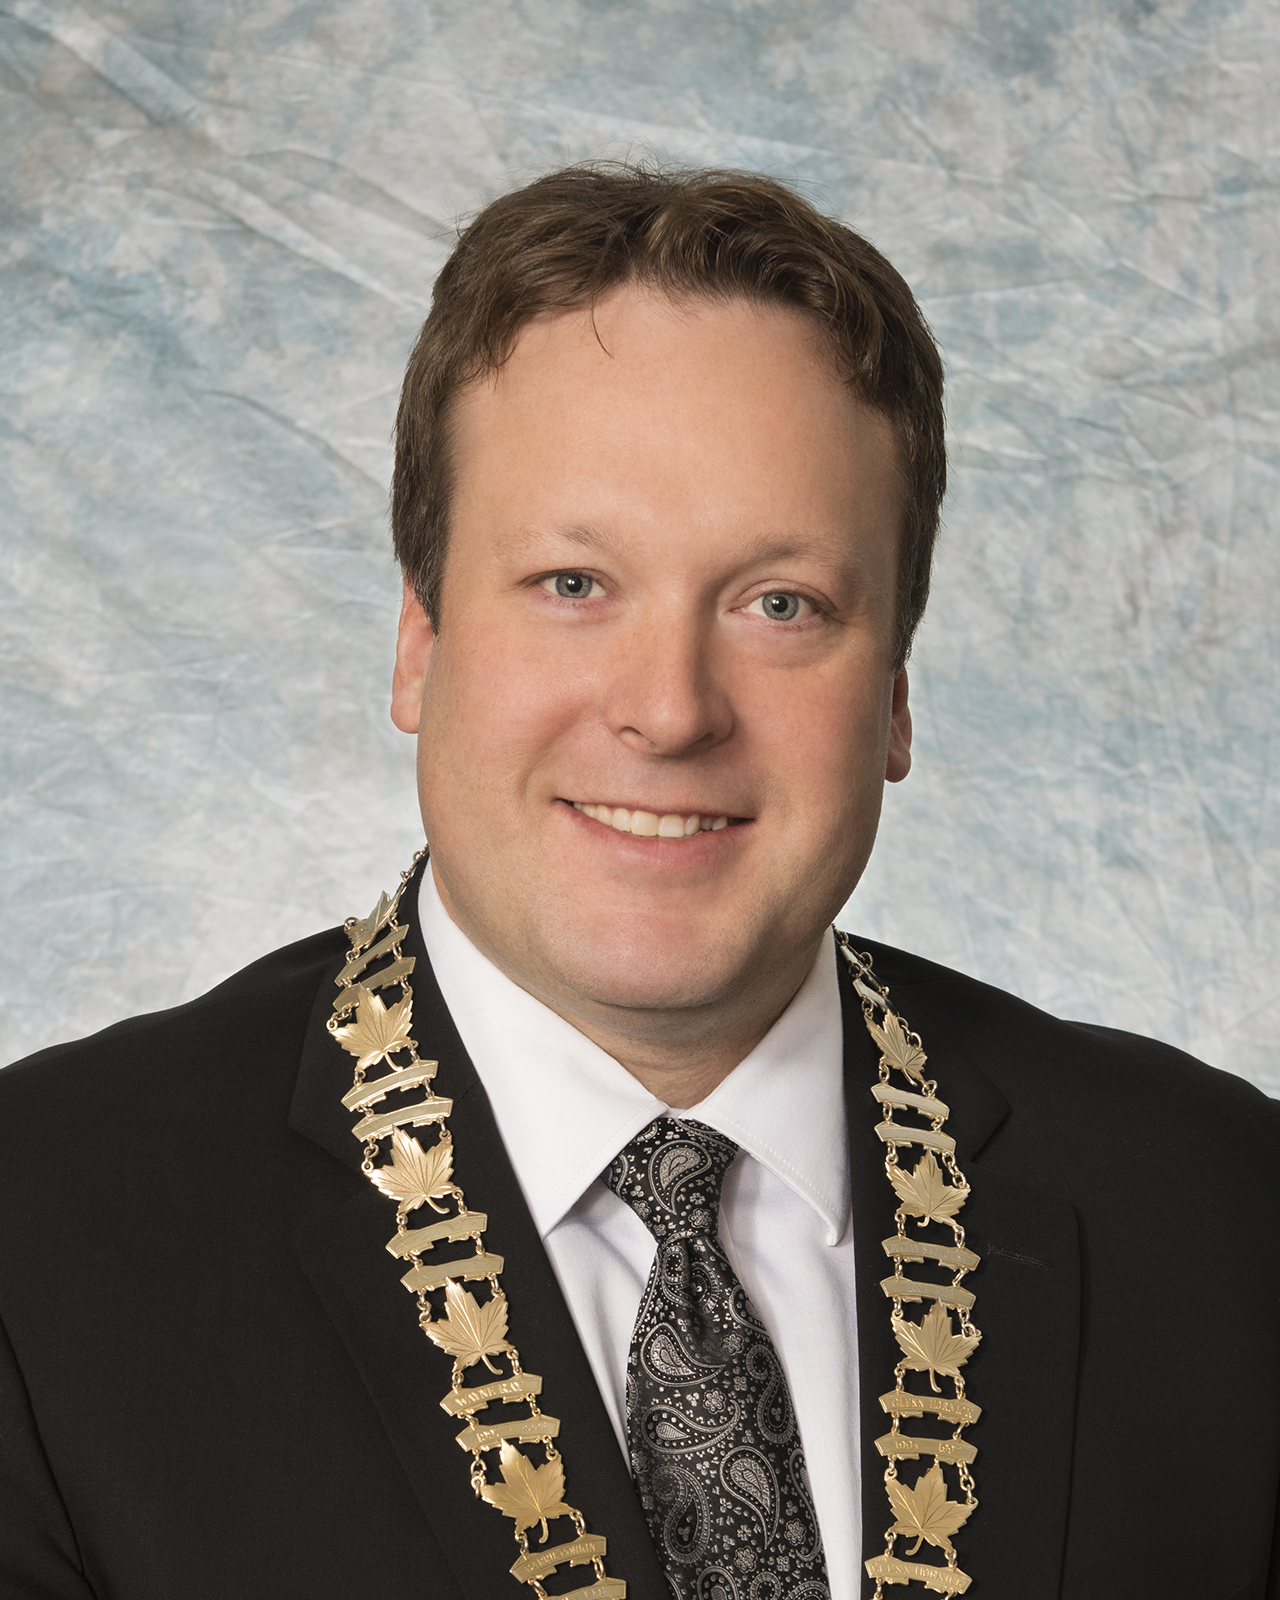 Mayor Ryan Bater